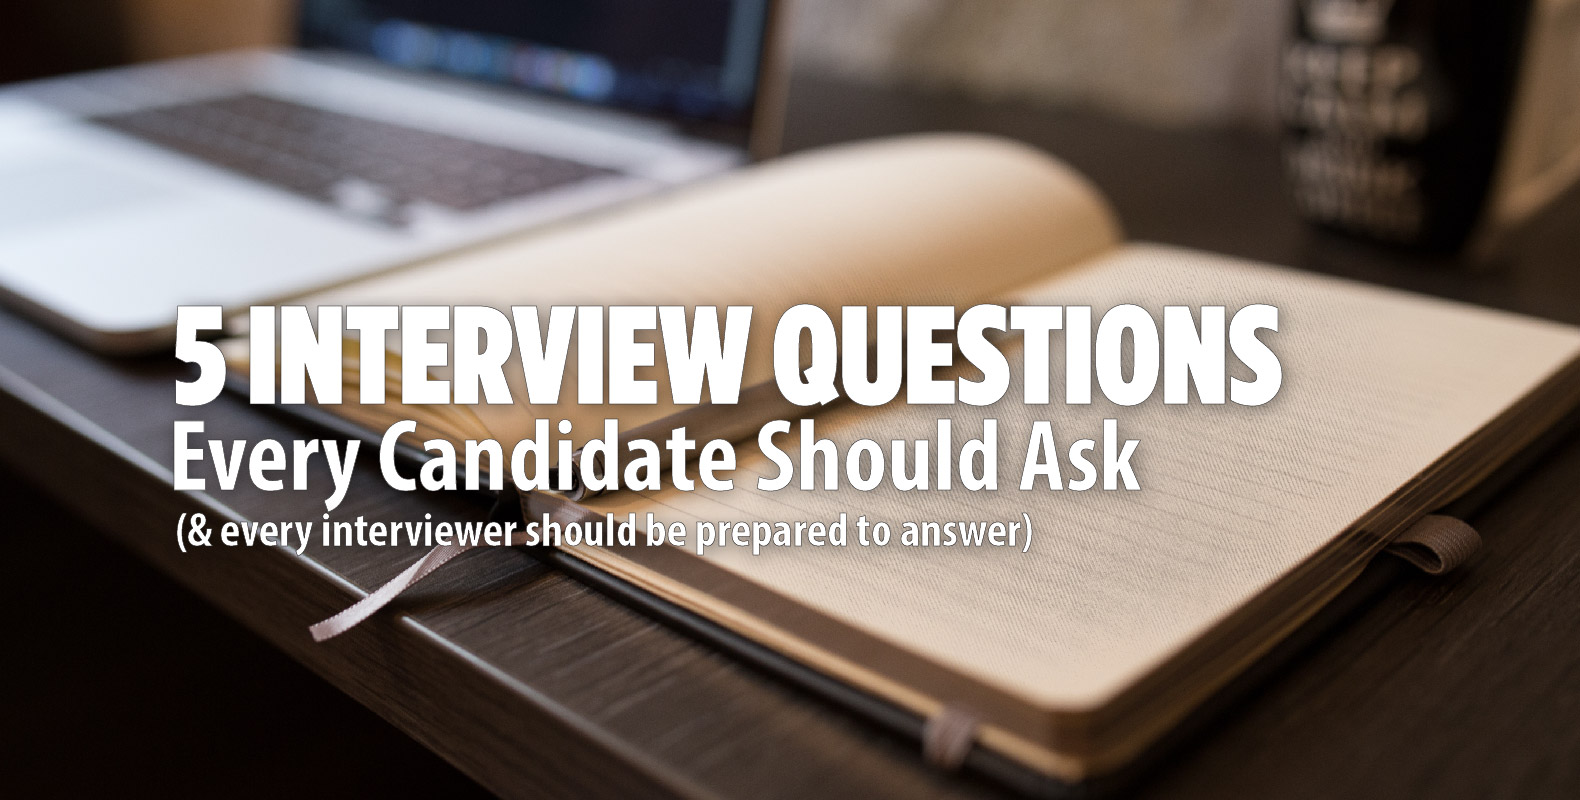 5 Interview Questions by Tripp Atkinson